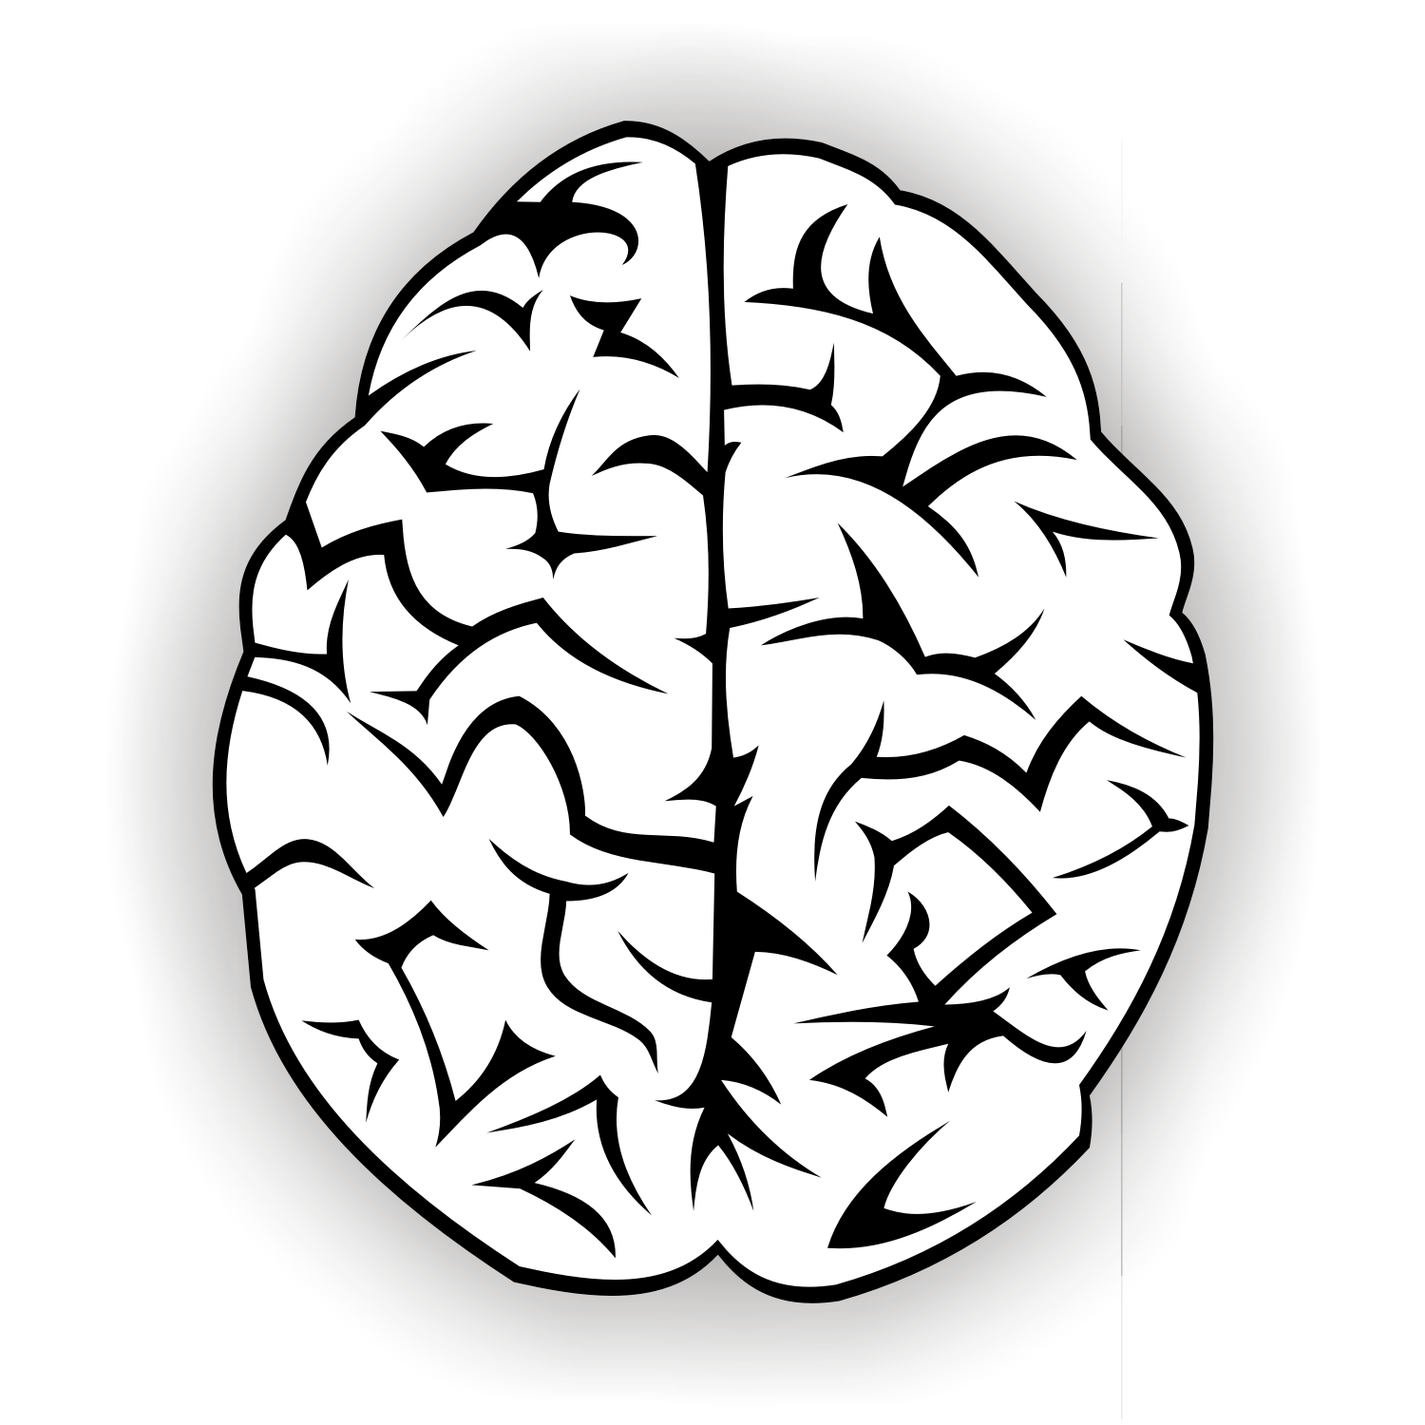 Drawing of brain clipart free to use clip art resource.